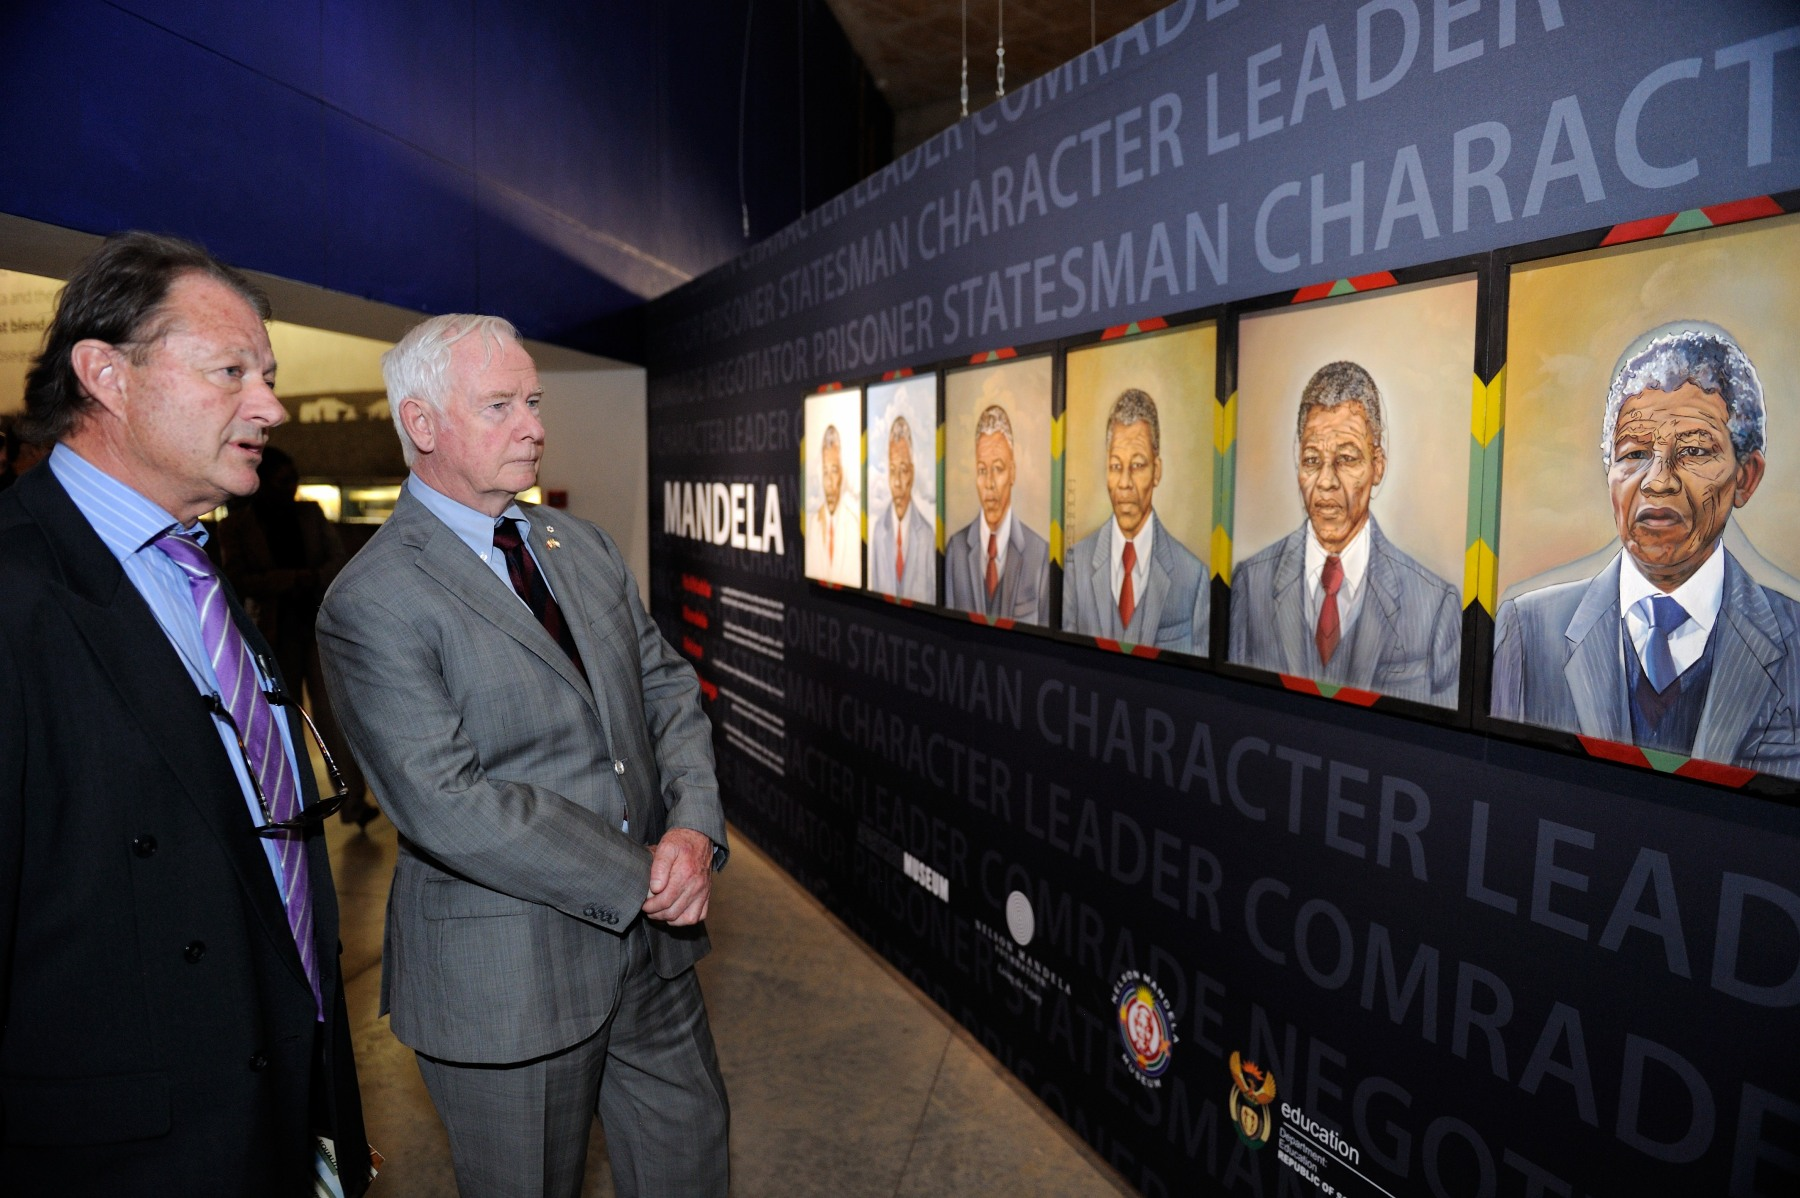 His Excellency visited an exhibition dedicated to Nelson Mandela, who was central to every stage of South Africa's epic struggle against apartheid, from formulating a new approach in the 1940s and leading the mass struggles of the 1950s to the formation of Umkhonto we Siswe in the early 1960s and his 27-year imprisonment.